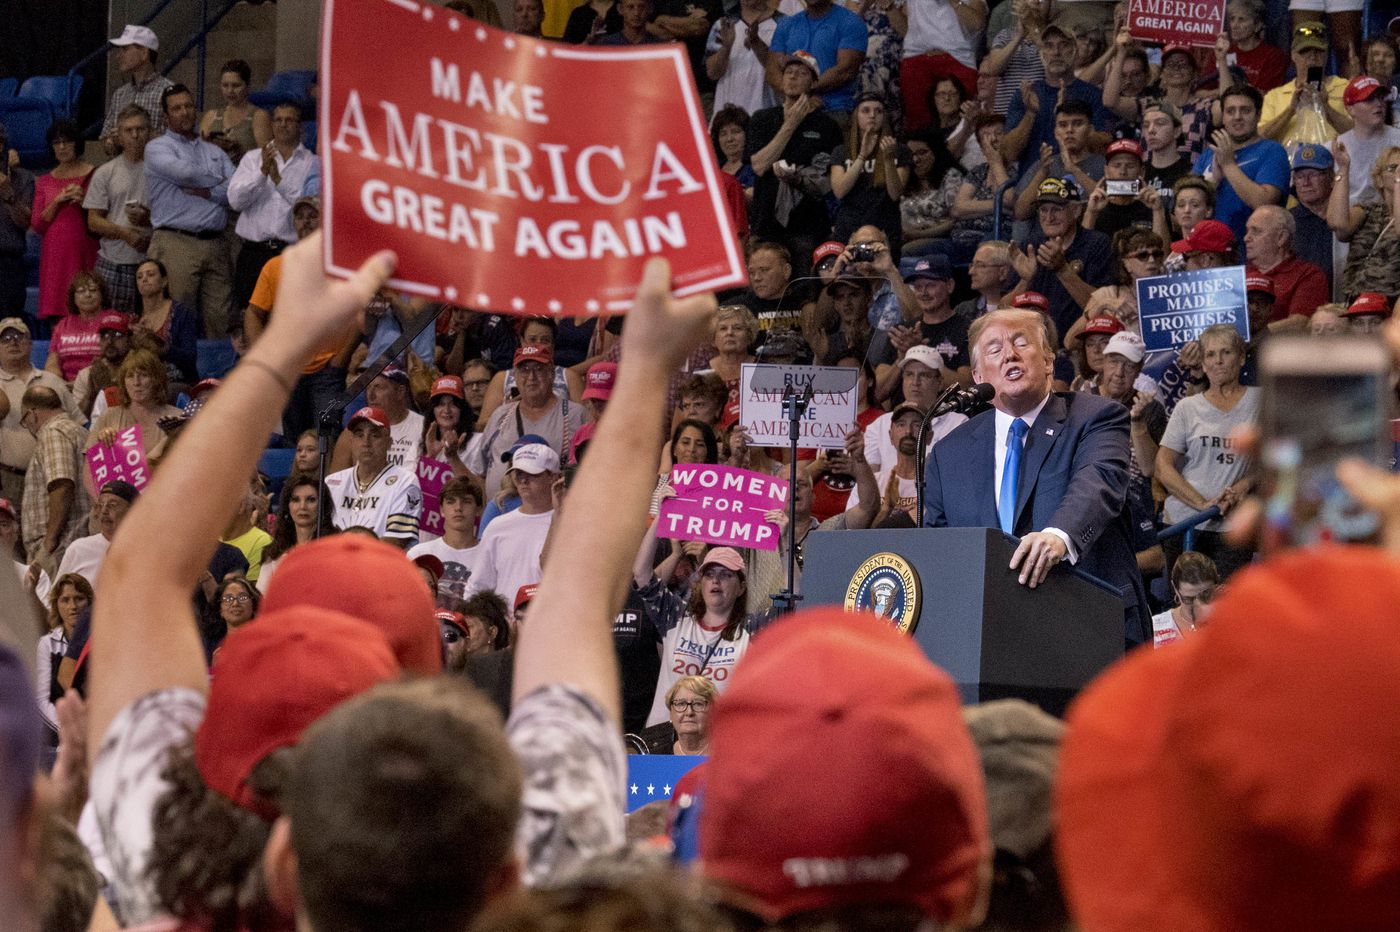 Trump visits Philly Tuesday to discuss small business jobs at electrical contractor convention